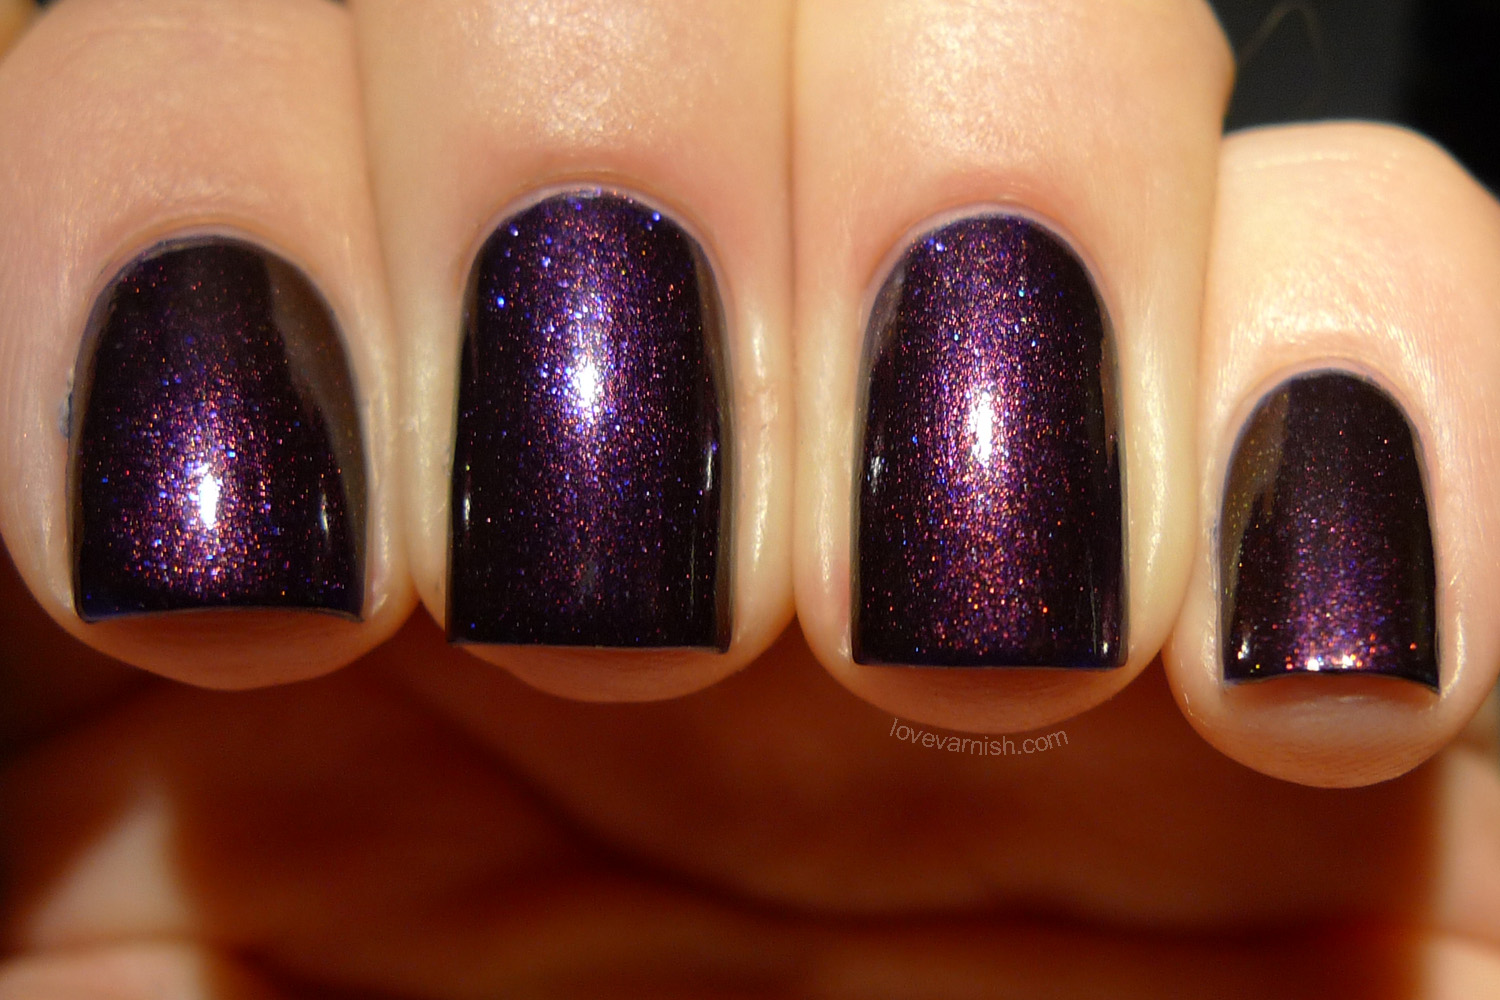 Chanel Taboo dupe comparison Kiko 497 Pearly Indian Violet